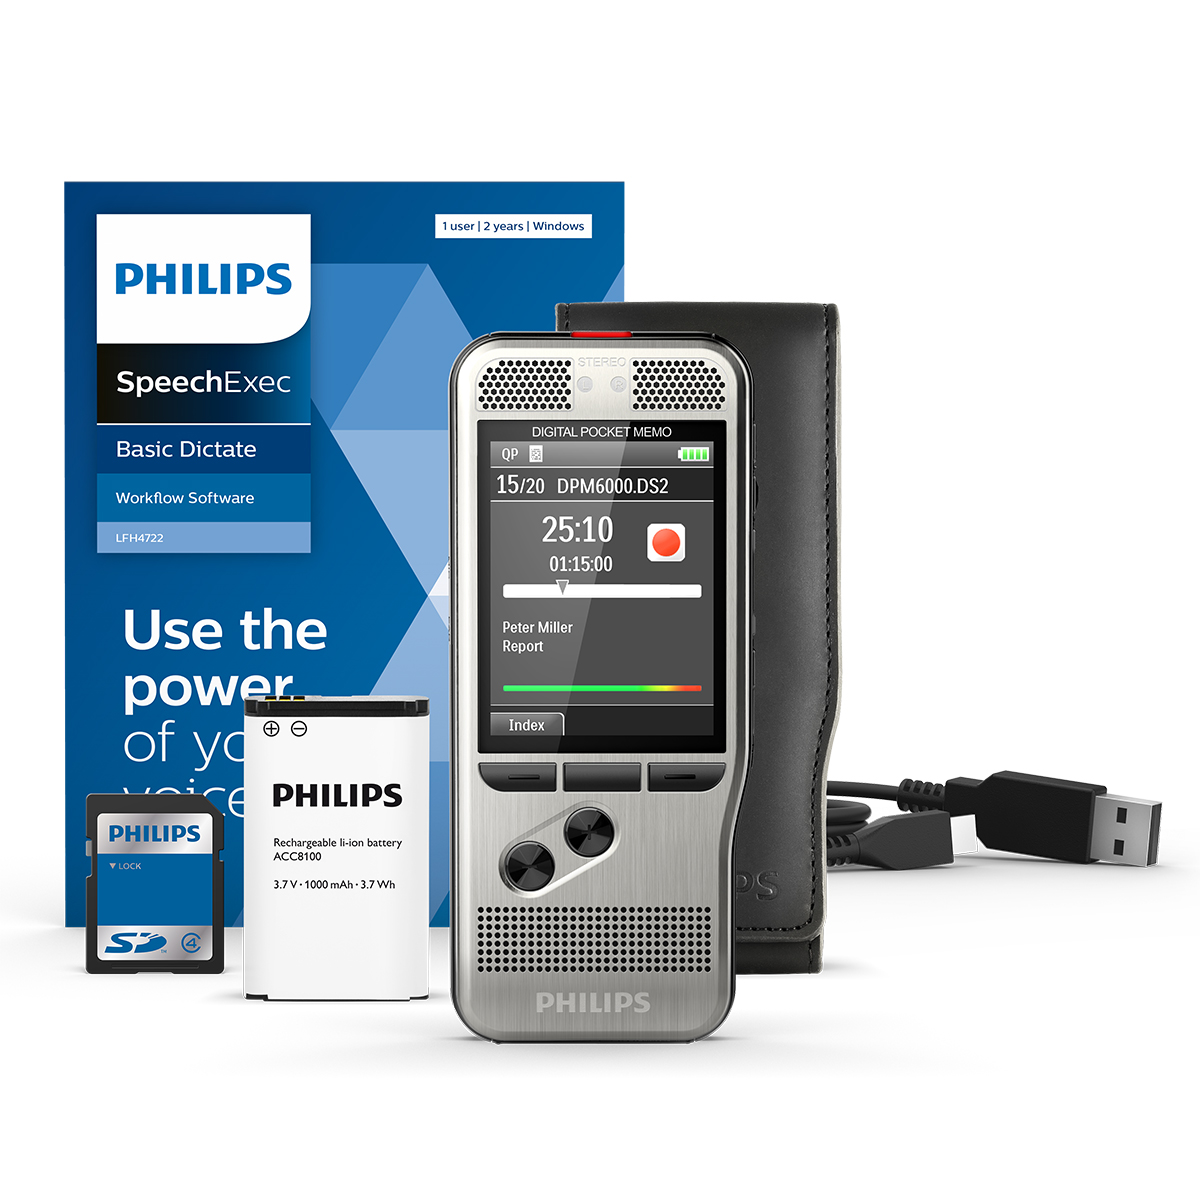 Philips DPM6000 Pocket Memo with SpeechExec Dictate 11